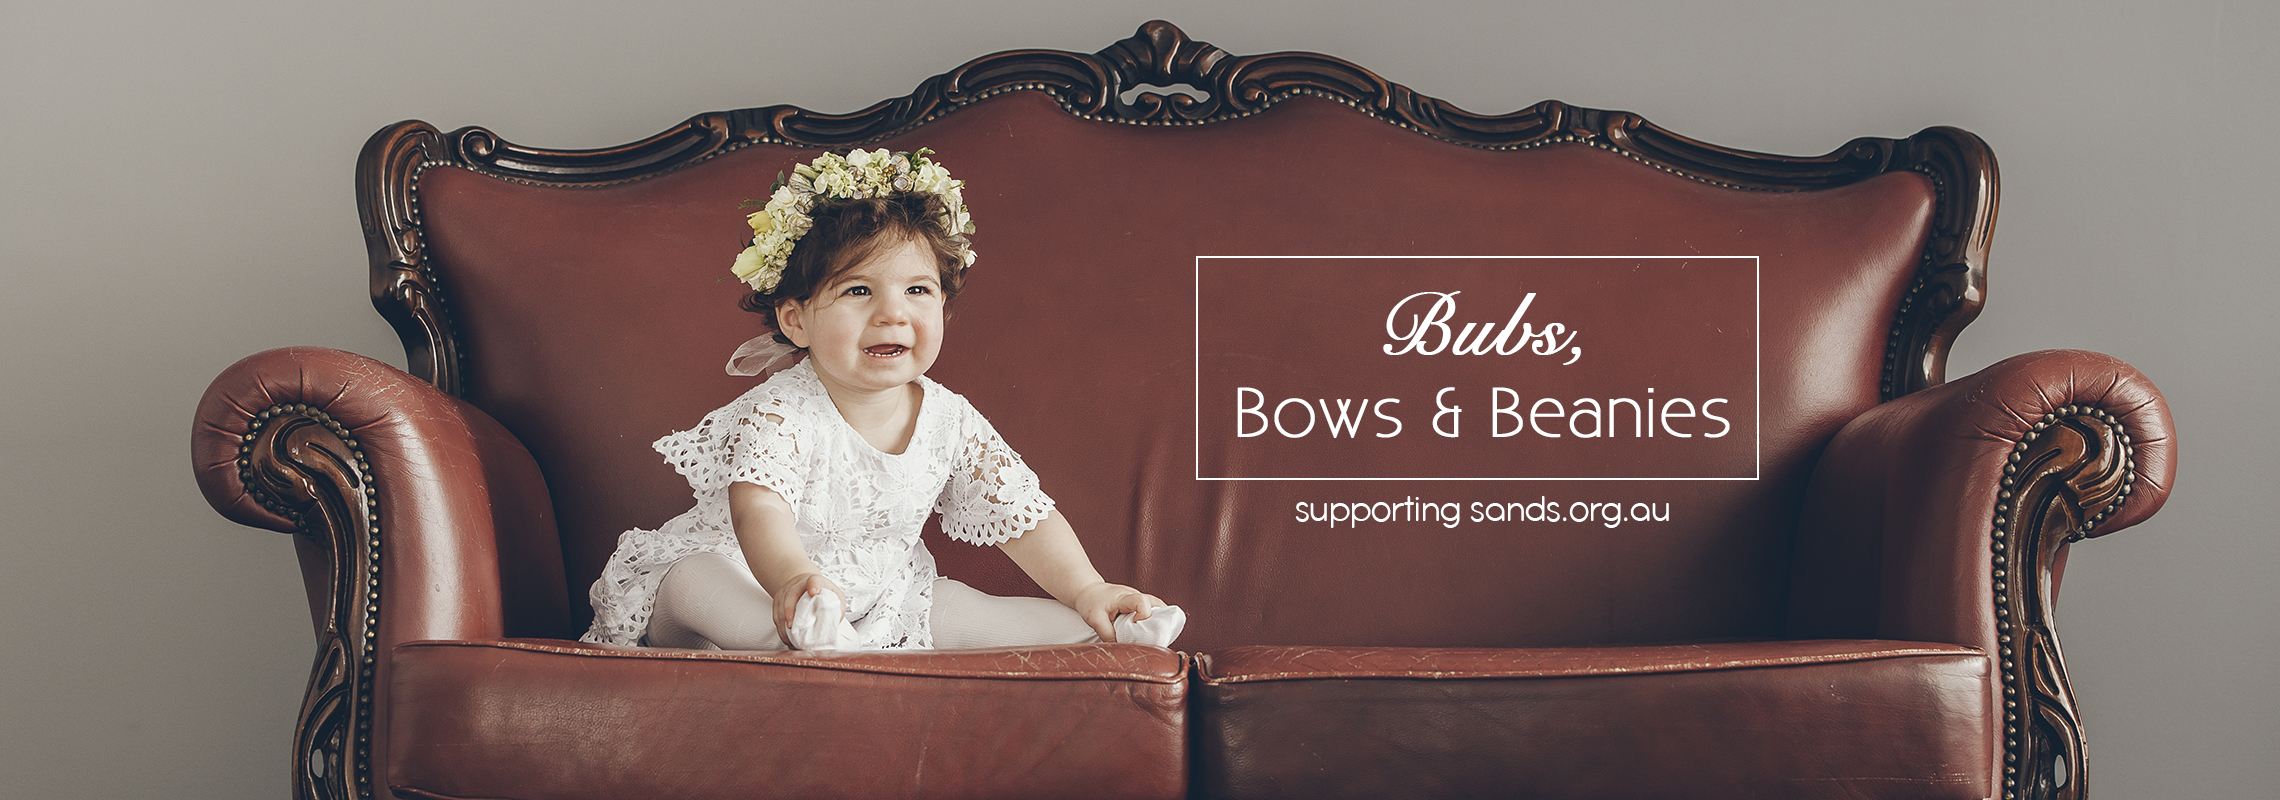 Bubs, Bows & Beanies, A Photography Project raising Funds for Sands.org.au